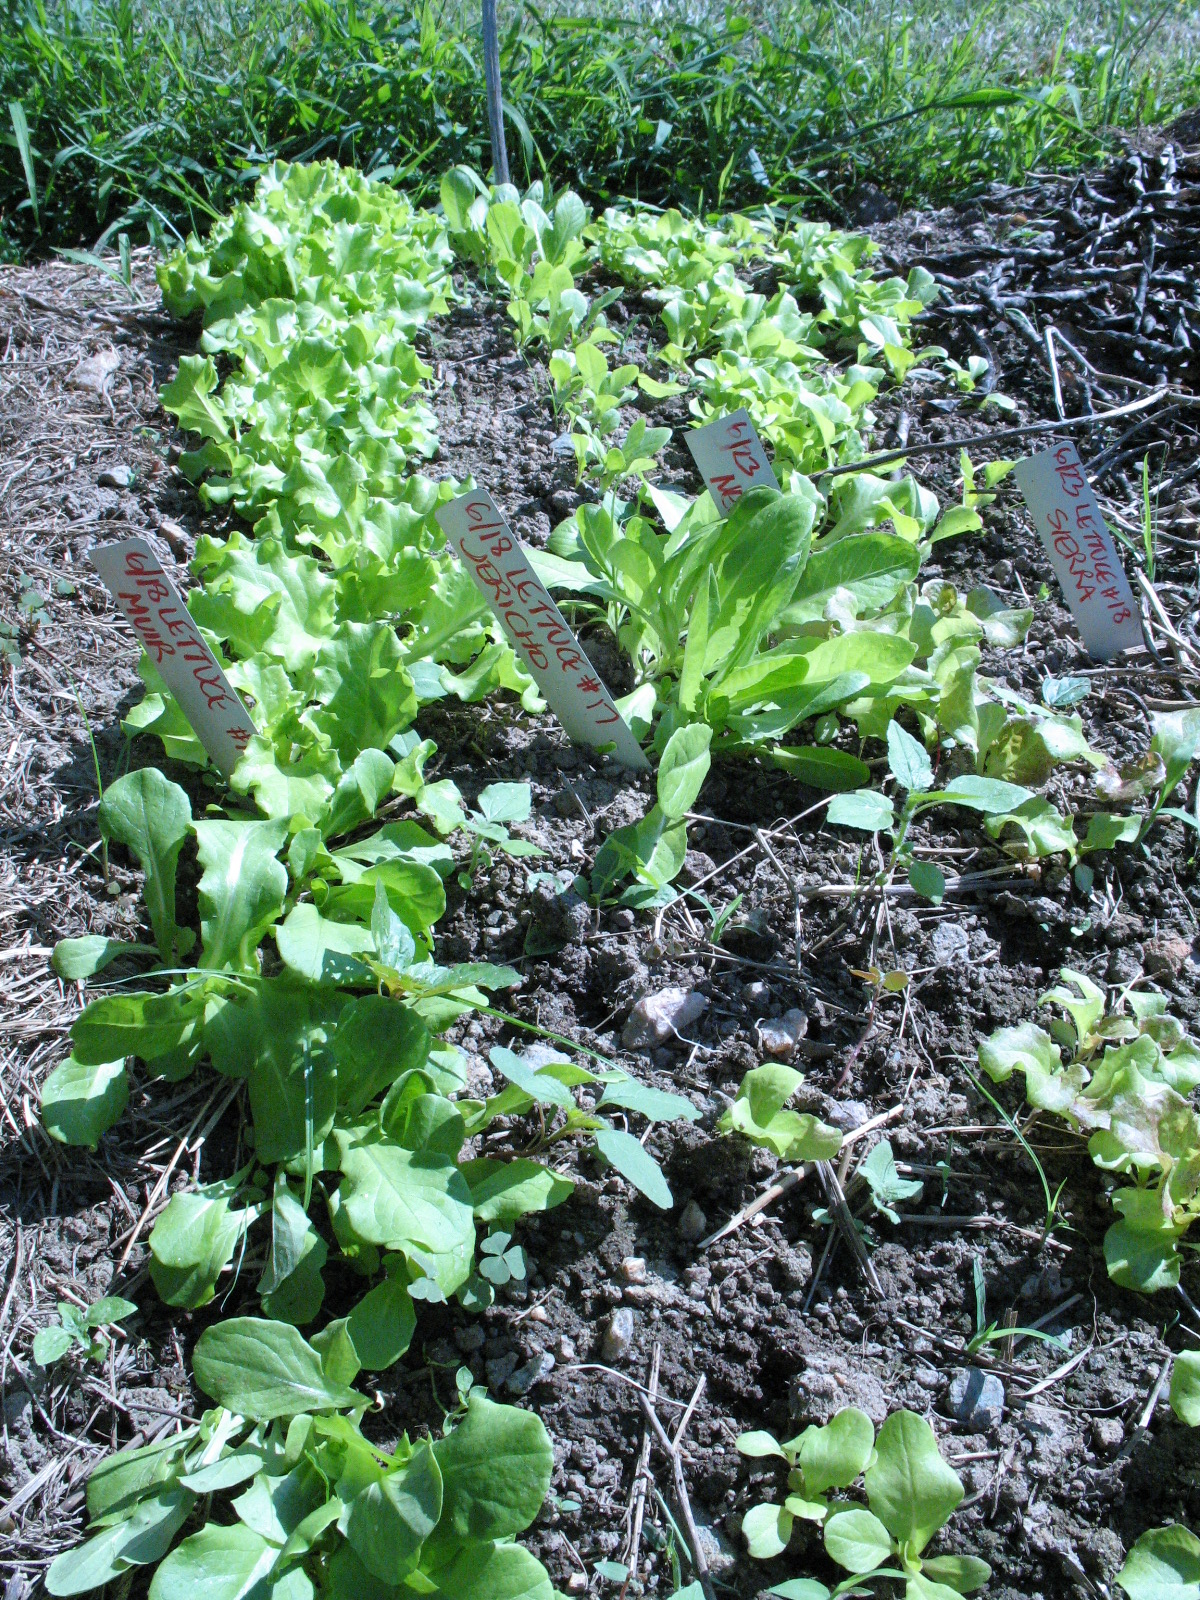 Lettuce seed bed, with Muir, Jericho, Sierra lettuces. Photo Bridget Aleshire